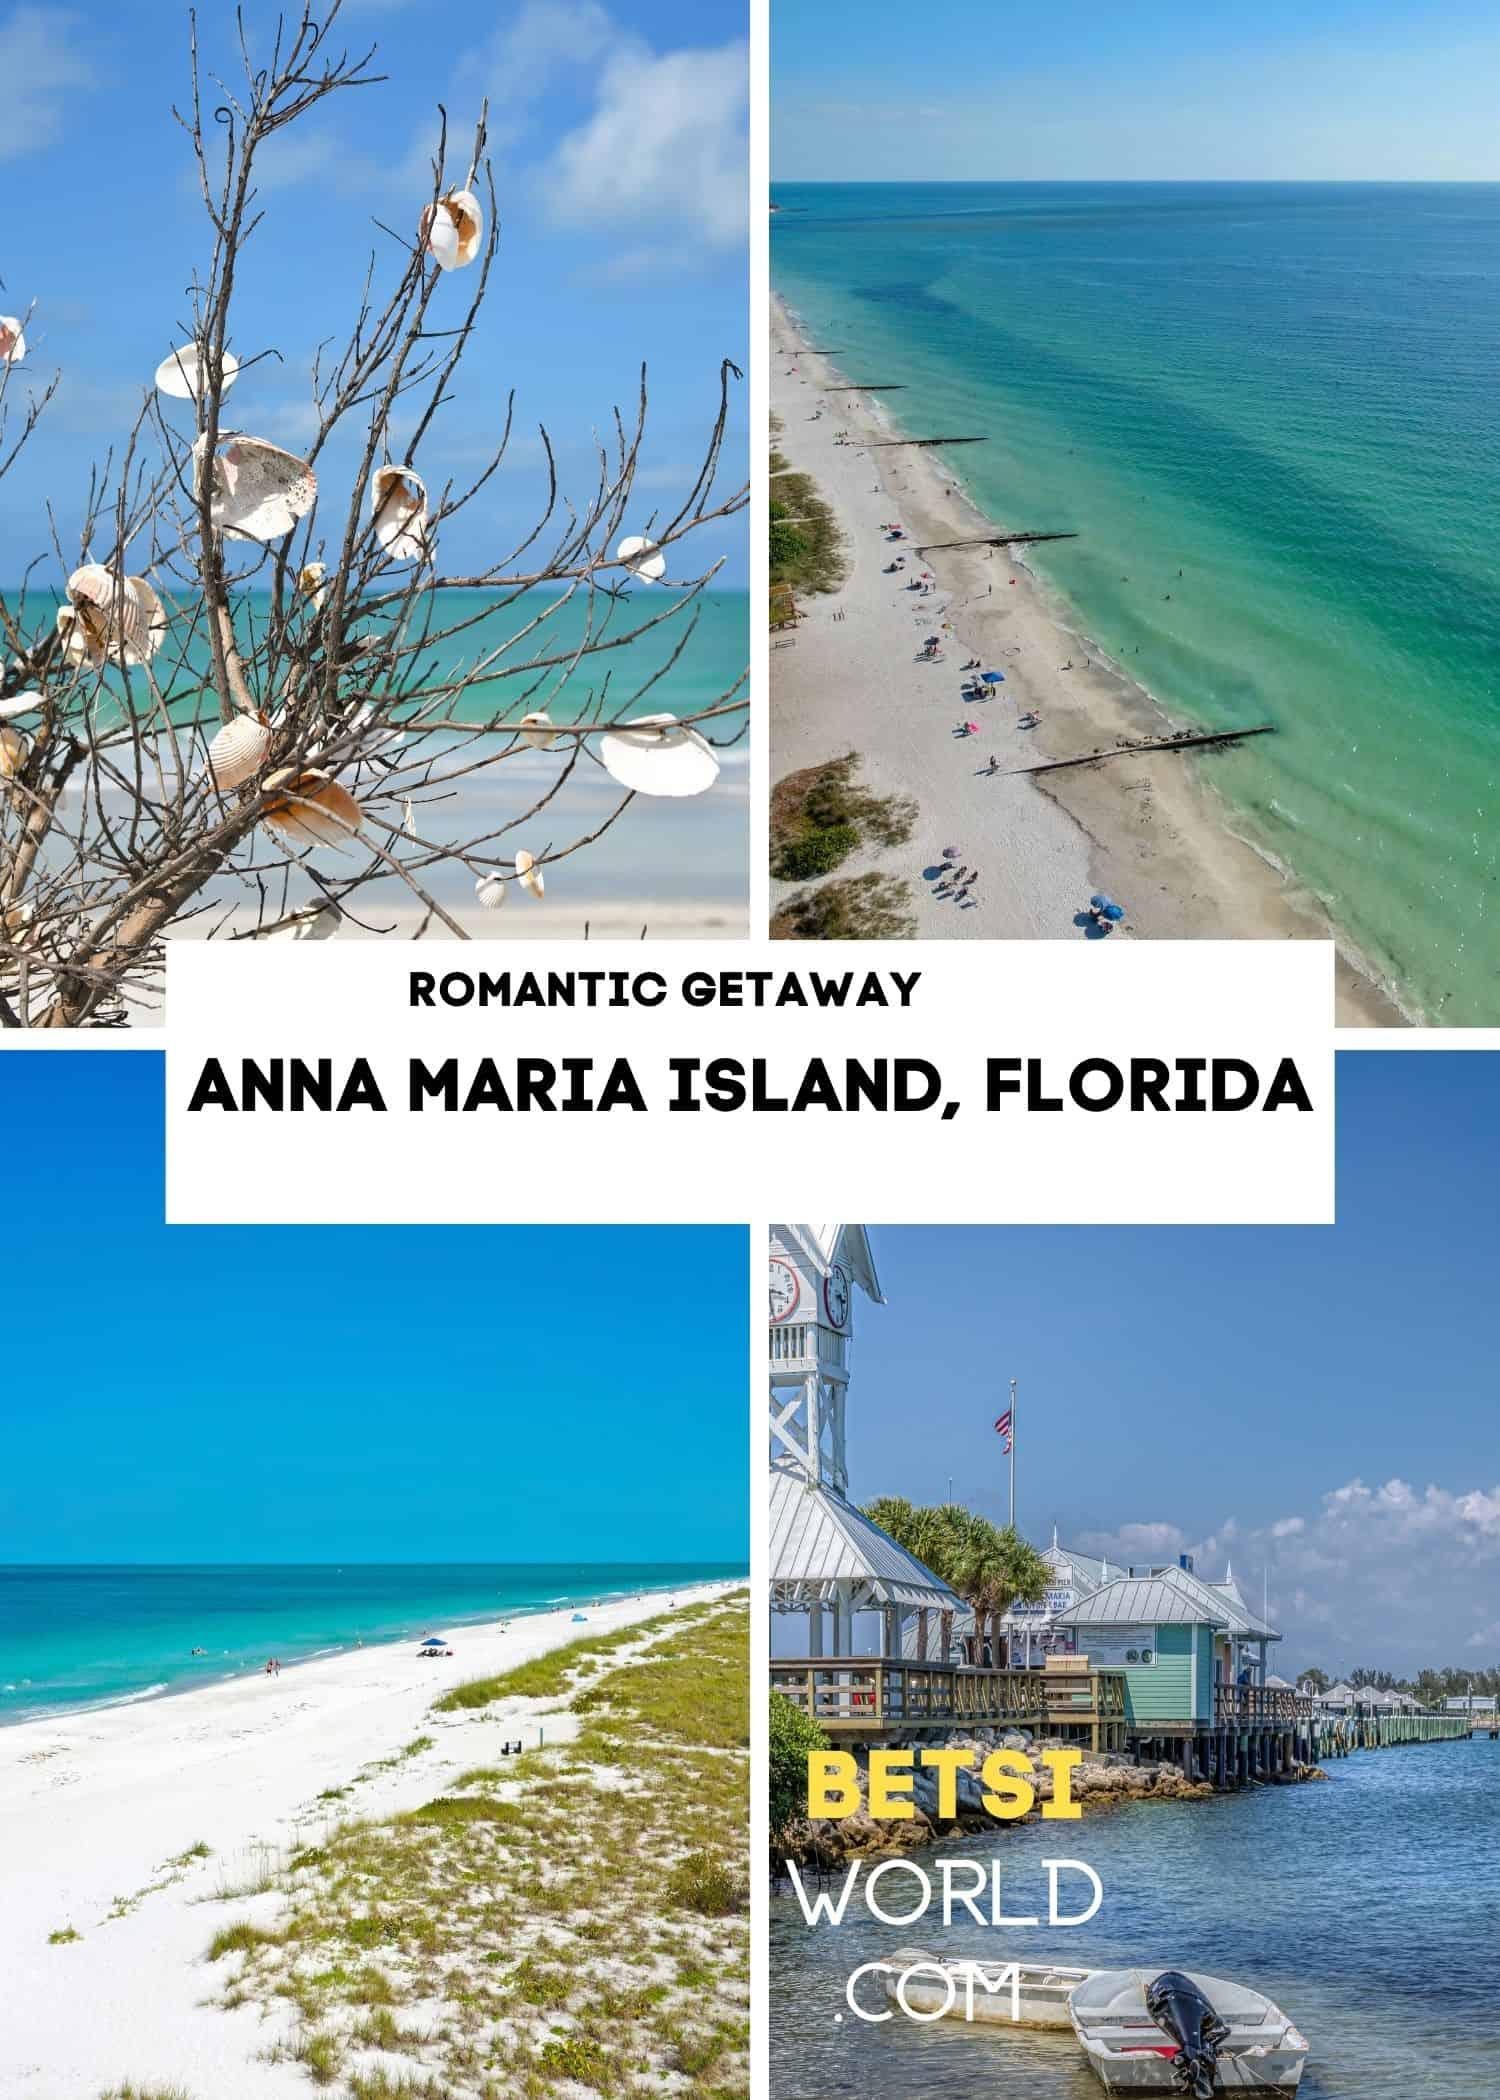 Anna Maria Island has so many beautiful and romantic spots to visit. This vacation spot is filled with amazing beaches and restaurants. I especially loved visiting the historic Anna Maria city pier!